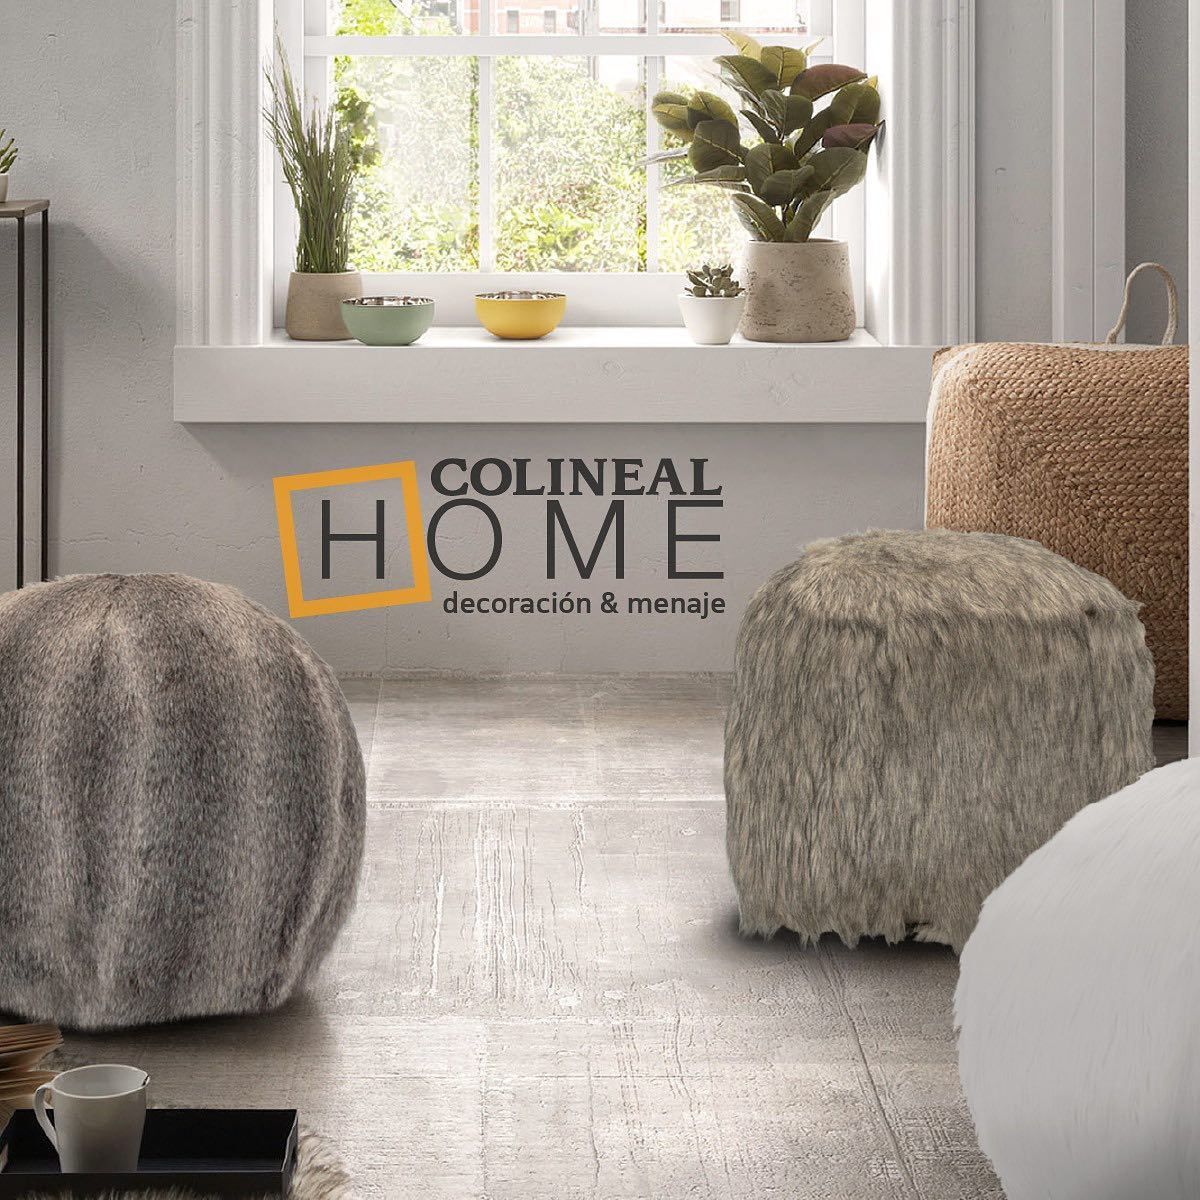 Colineal Home collection